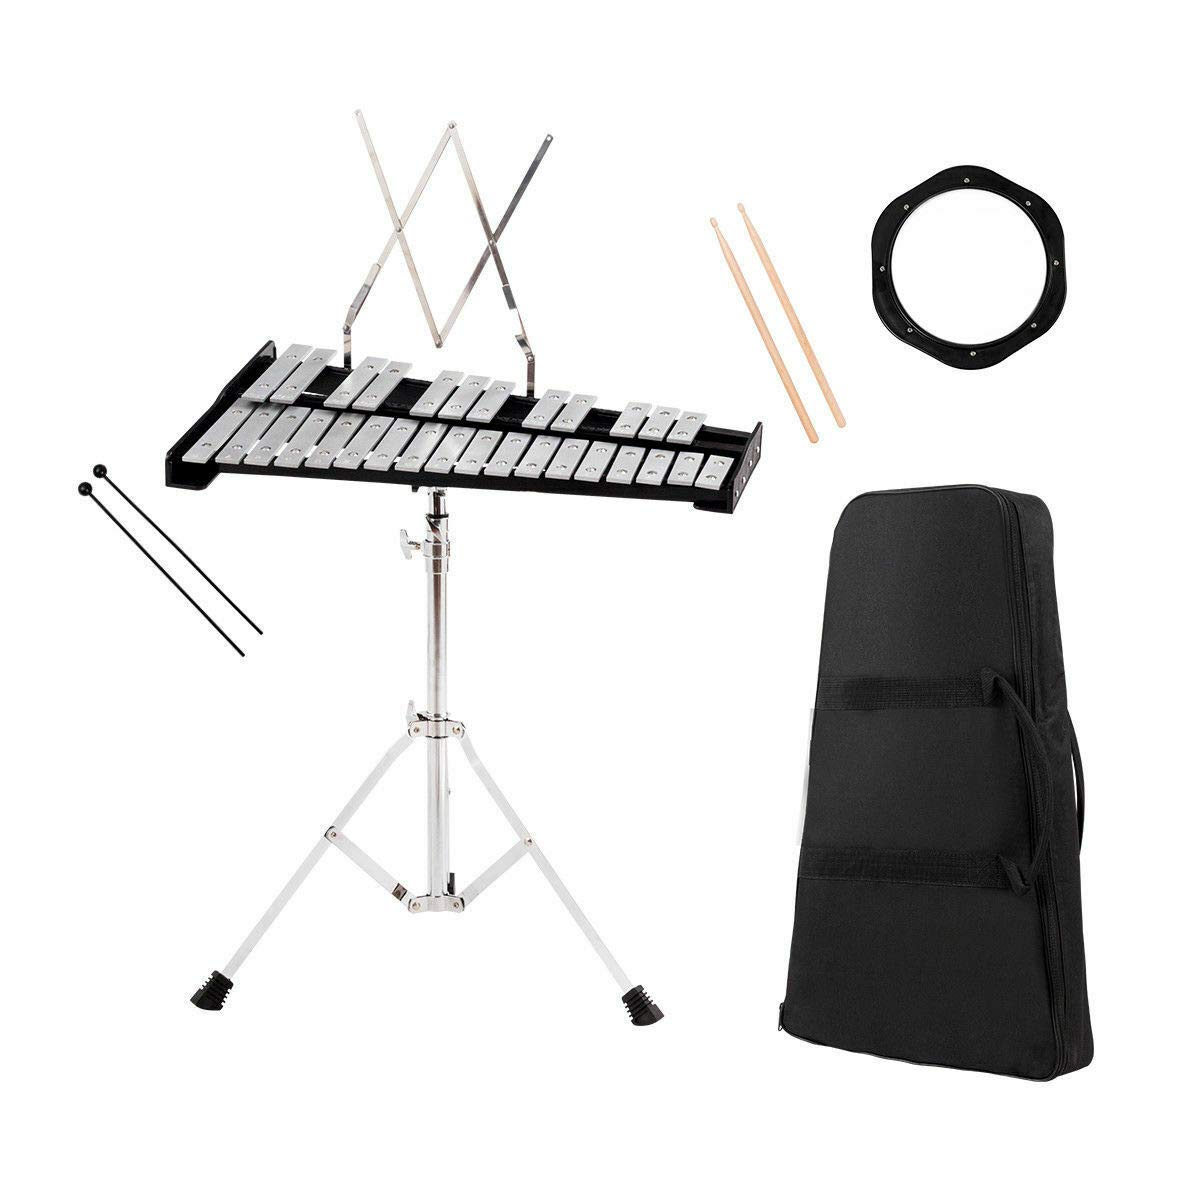 Percussion Glockenspiel Bell Kit 30 Notes w/Practice Pad +Mallets+Sticks+Stand